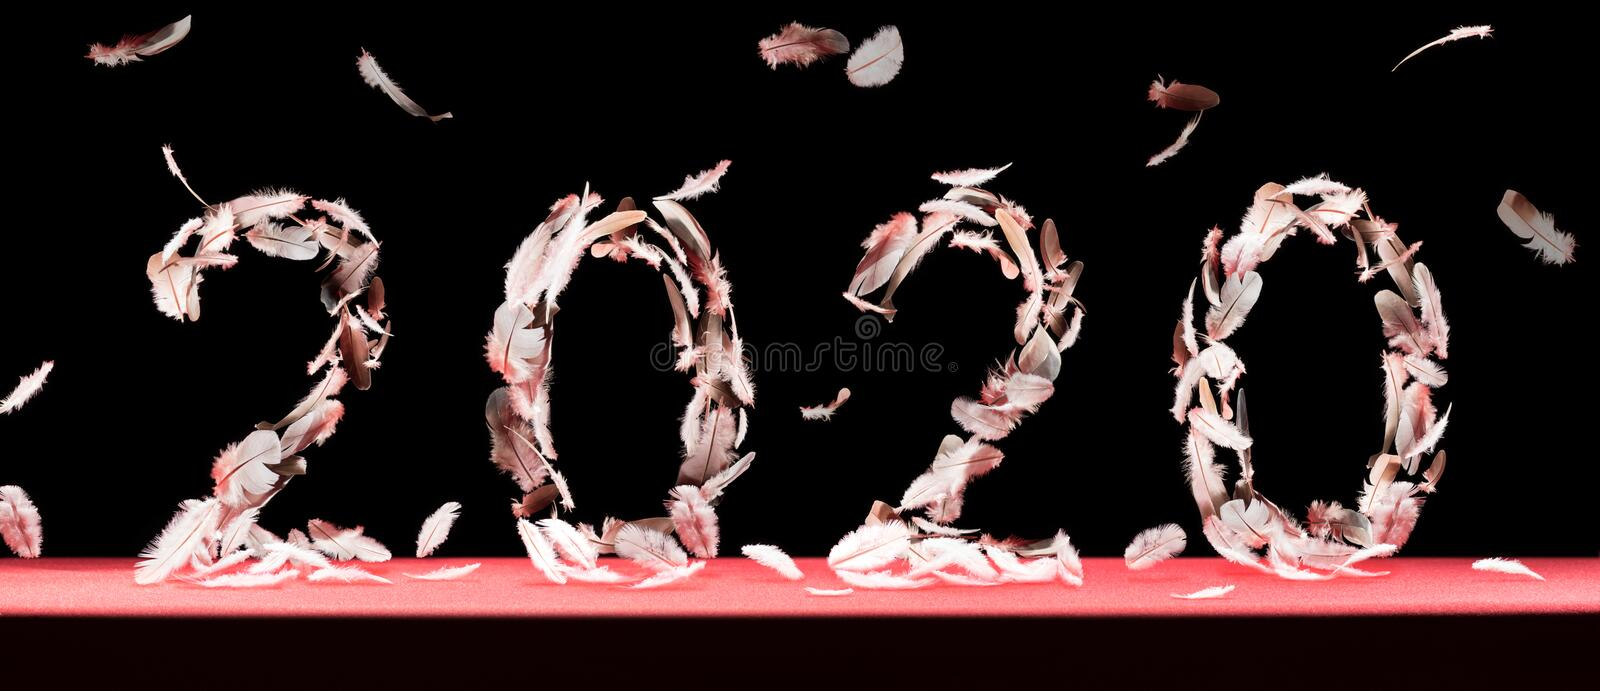 New 2020 year with falling feathers. stock photos